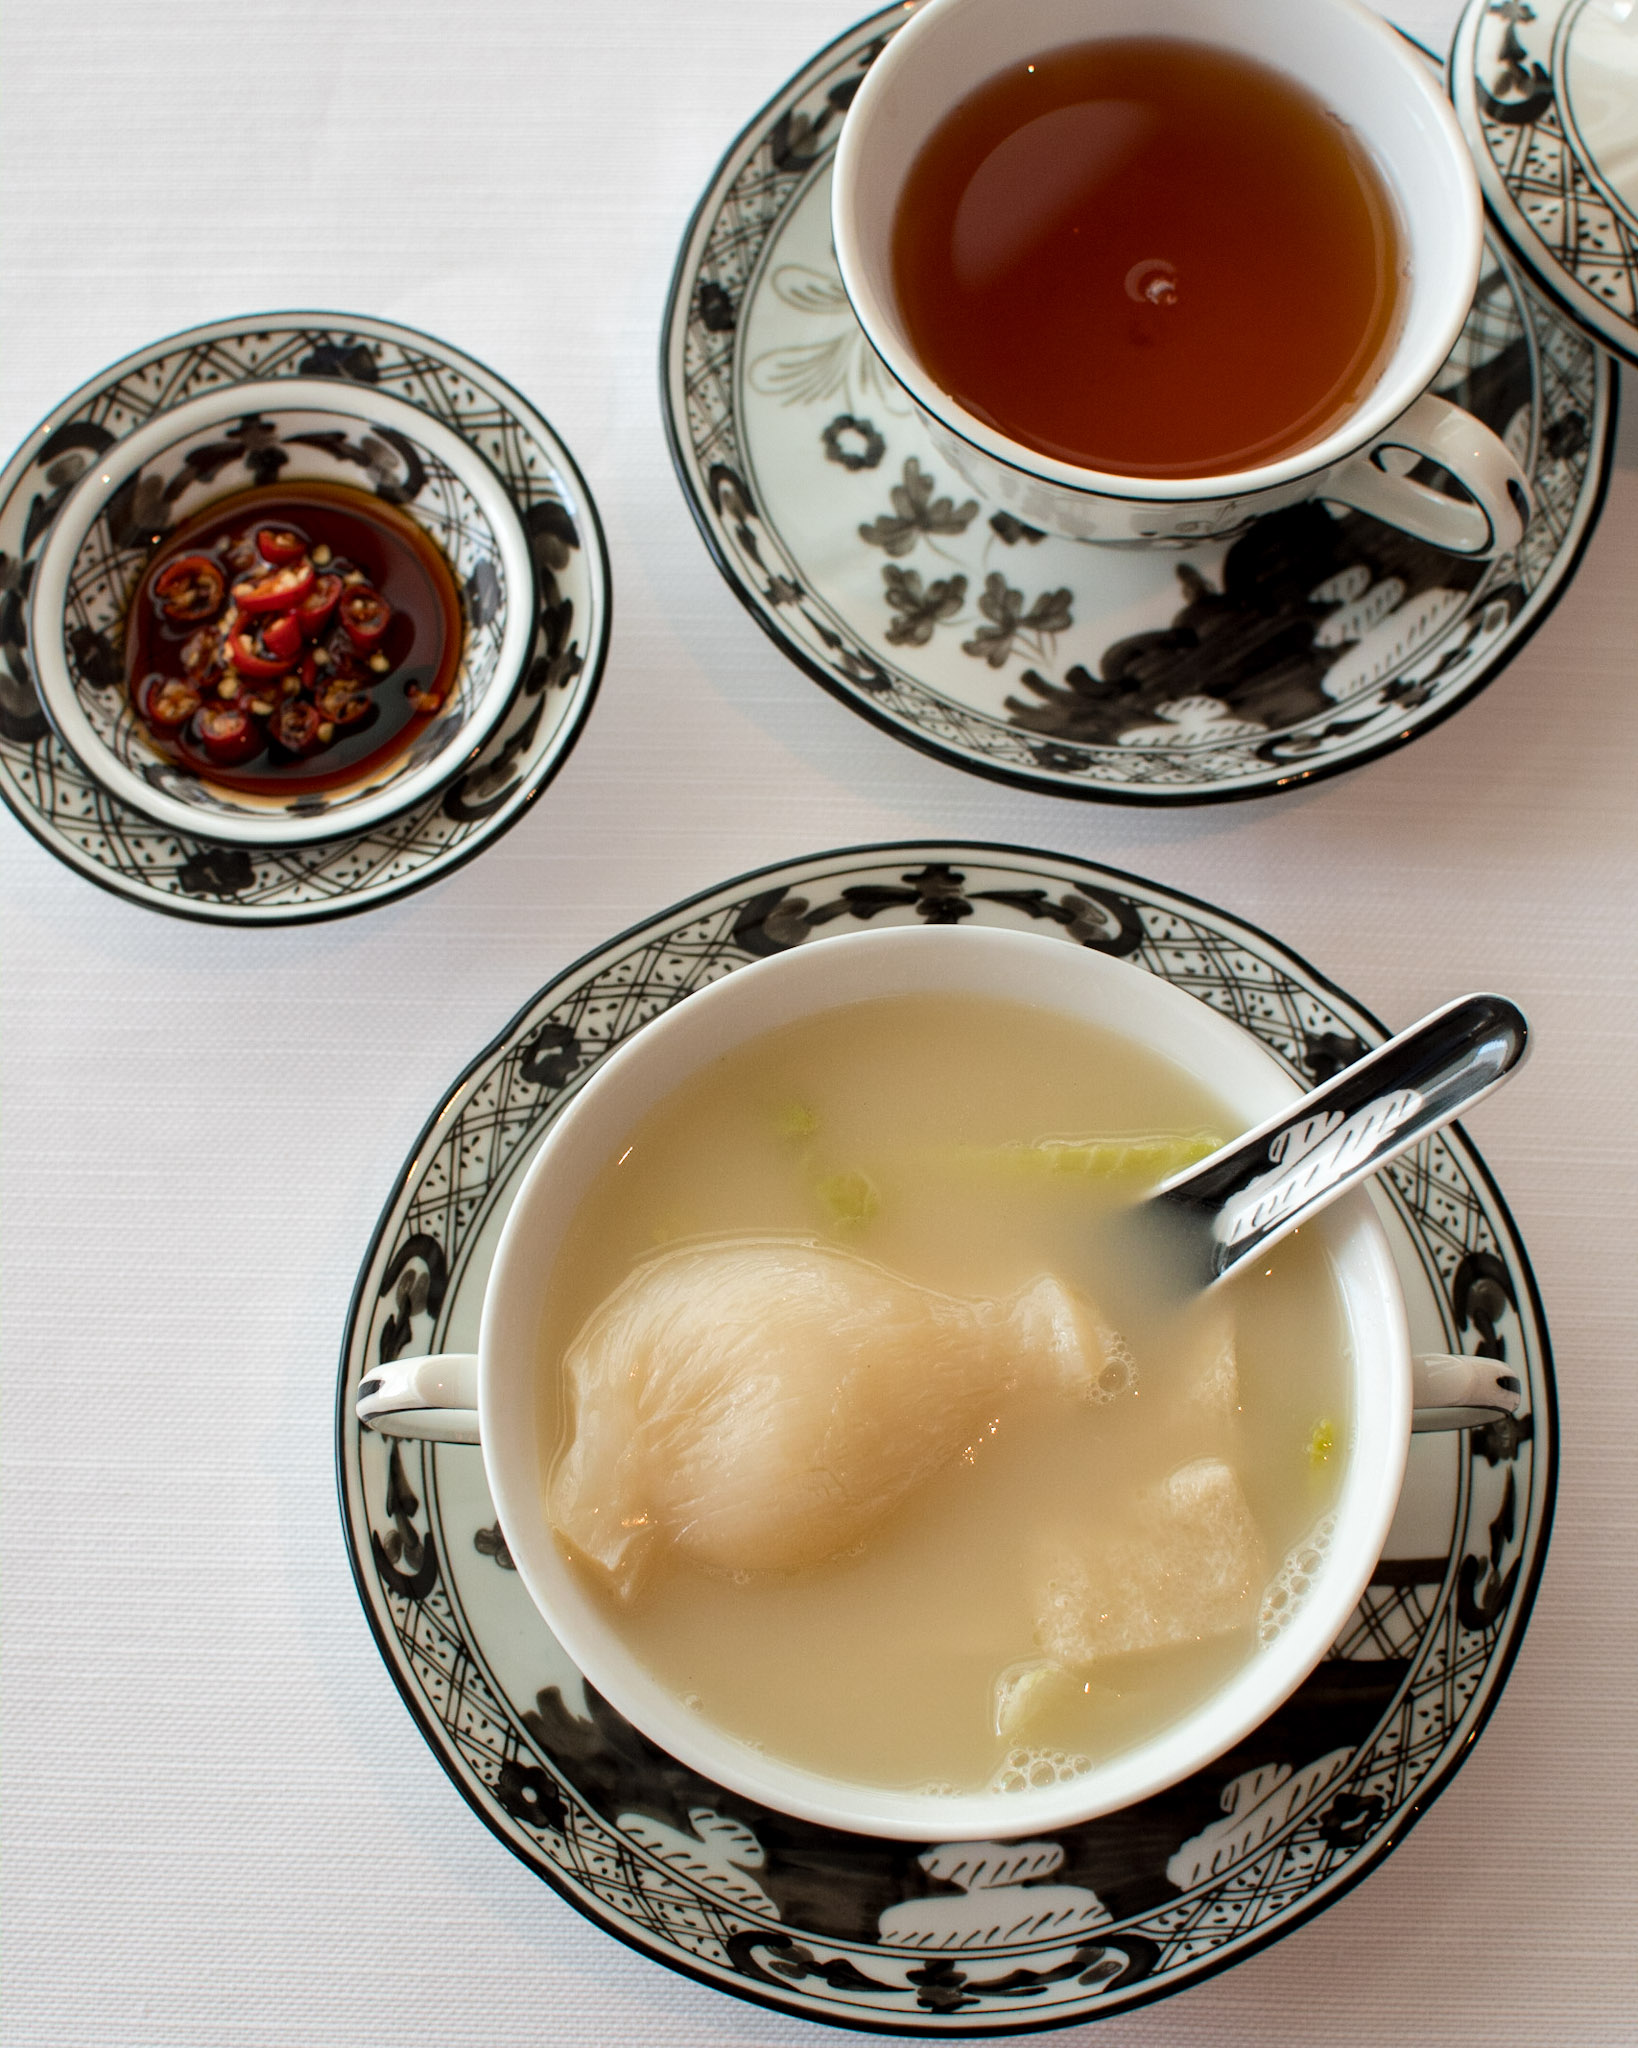 Double-boiled Superior Chicken Soup, Fish Maw,Bamboo Pith, Chinese Cabbage   Michelin Star Menu (Lunch) -  The Ritz-Carlton, Millenia Singapore